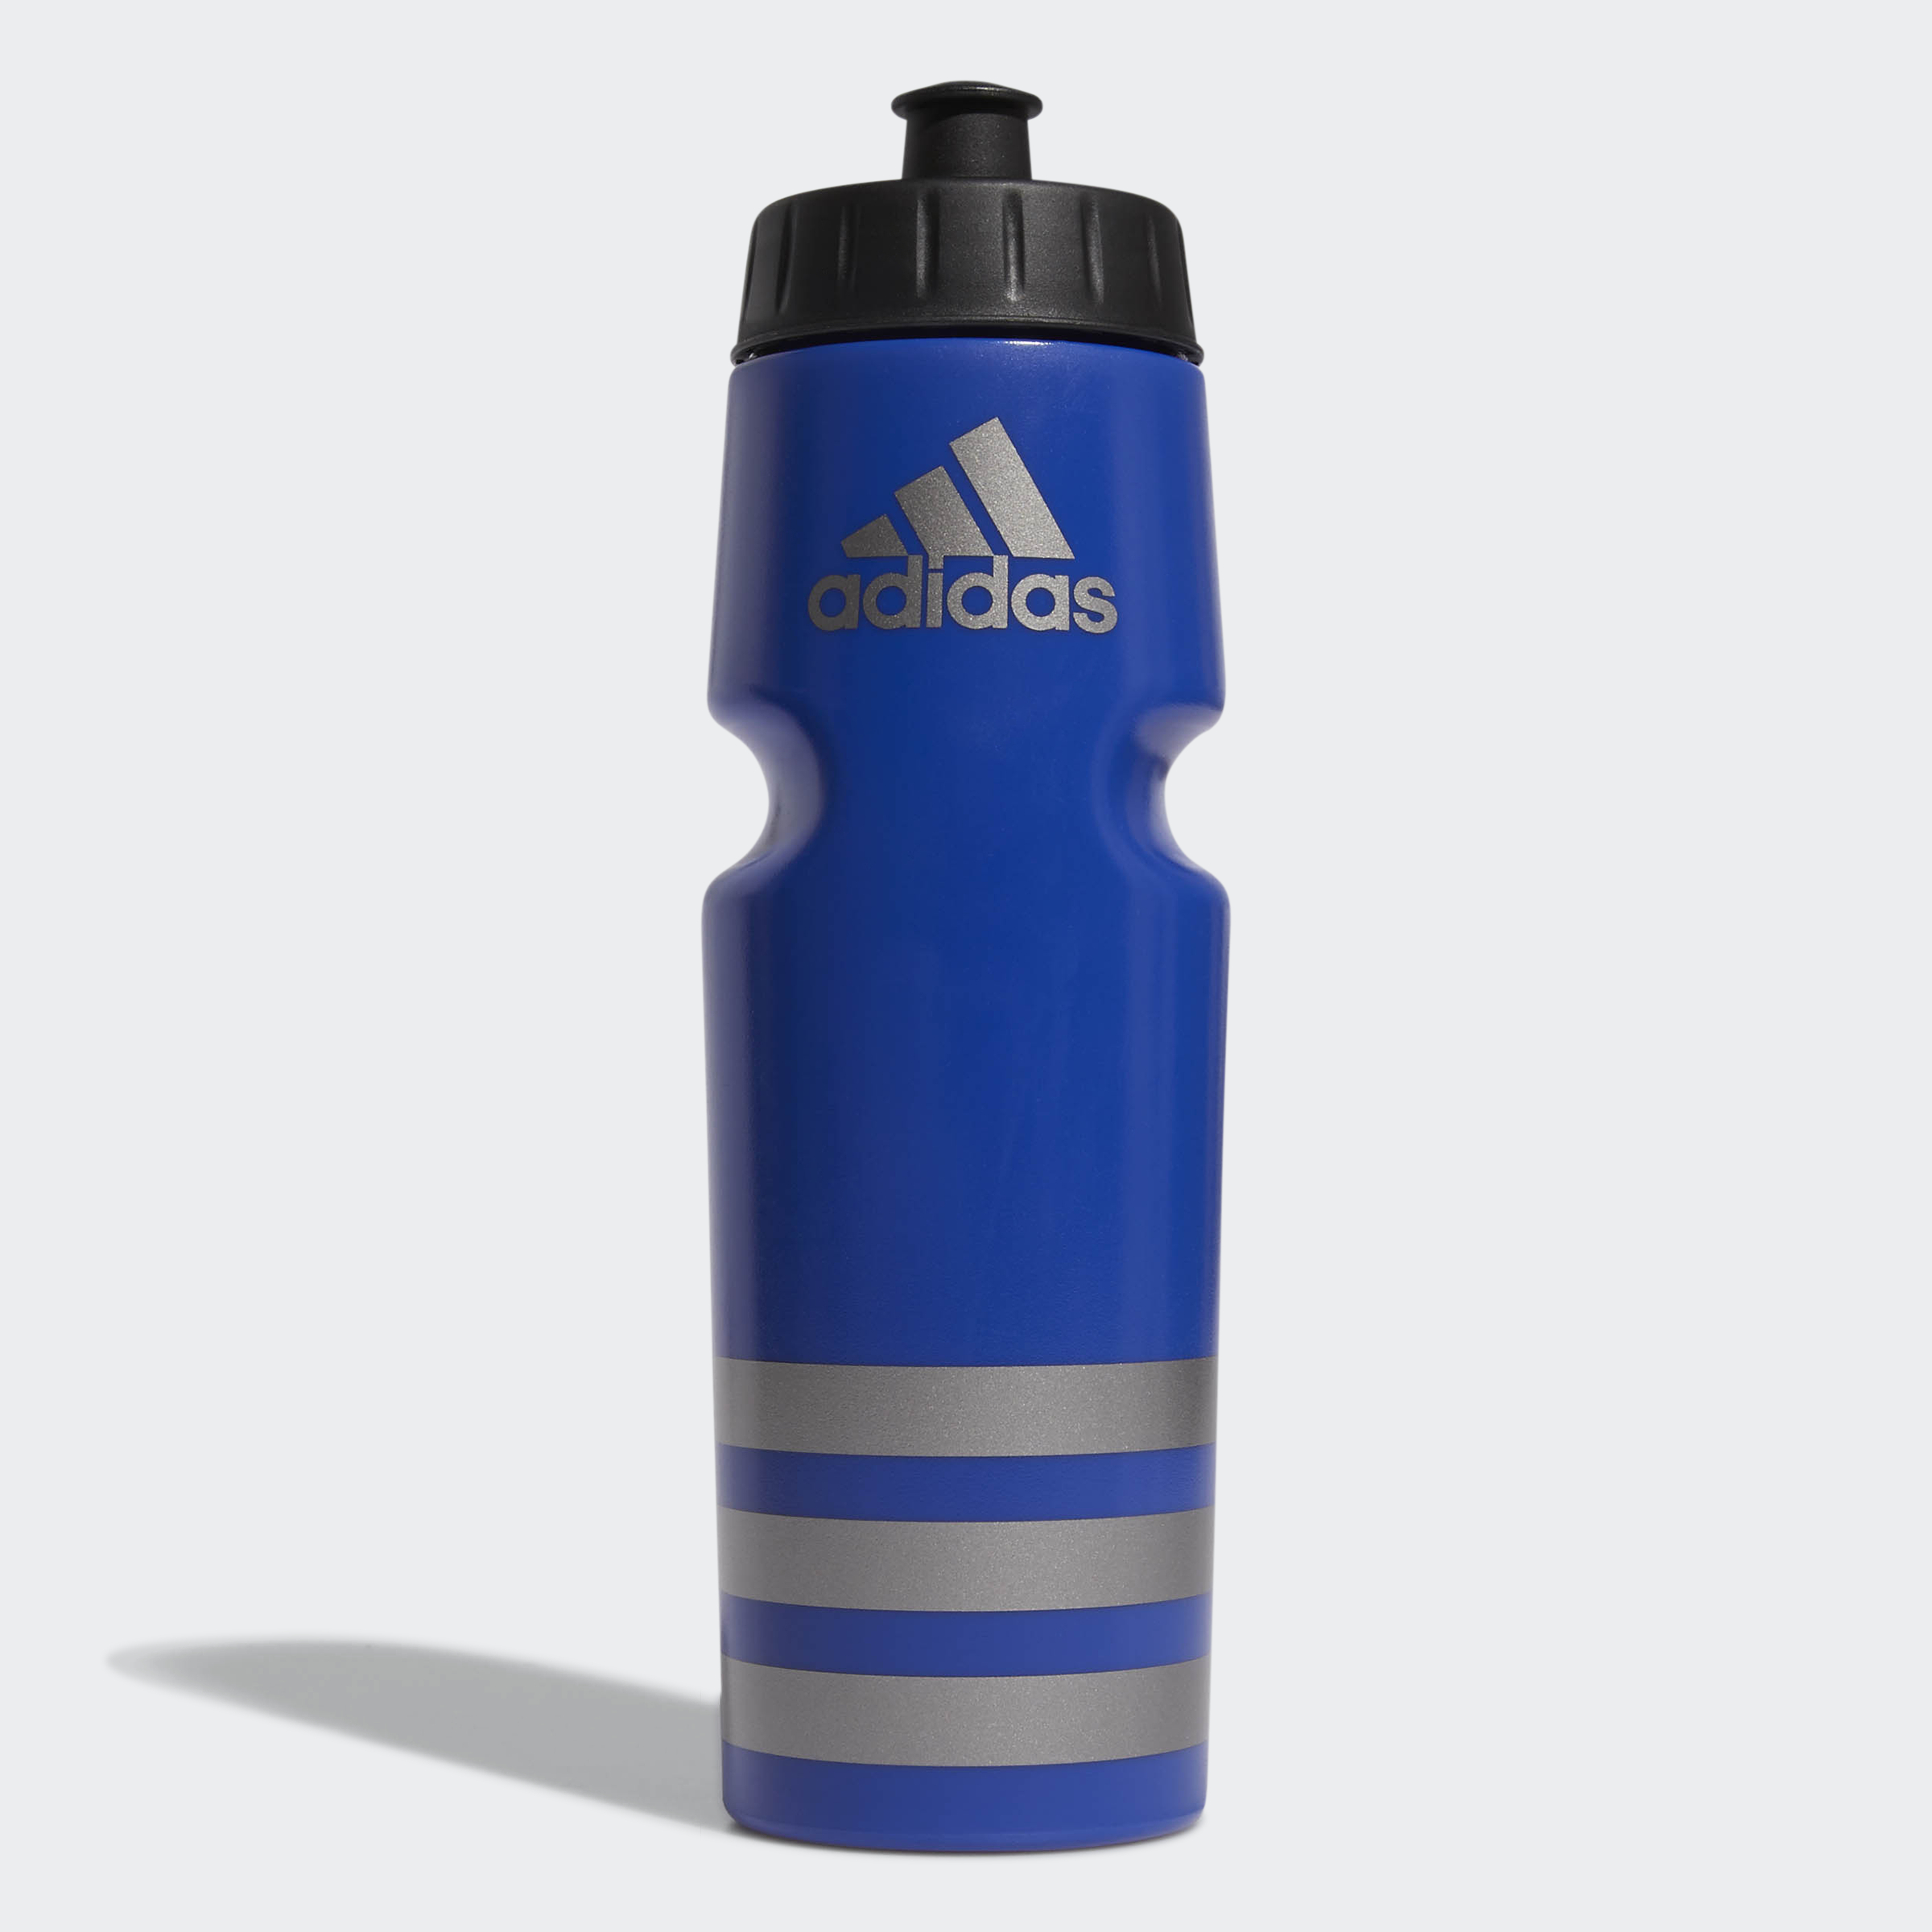 adidas-Squeeze-Plastic-Bottle-750-ML-Other-Accessories miniature 8